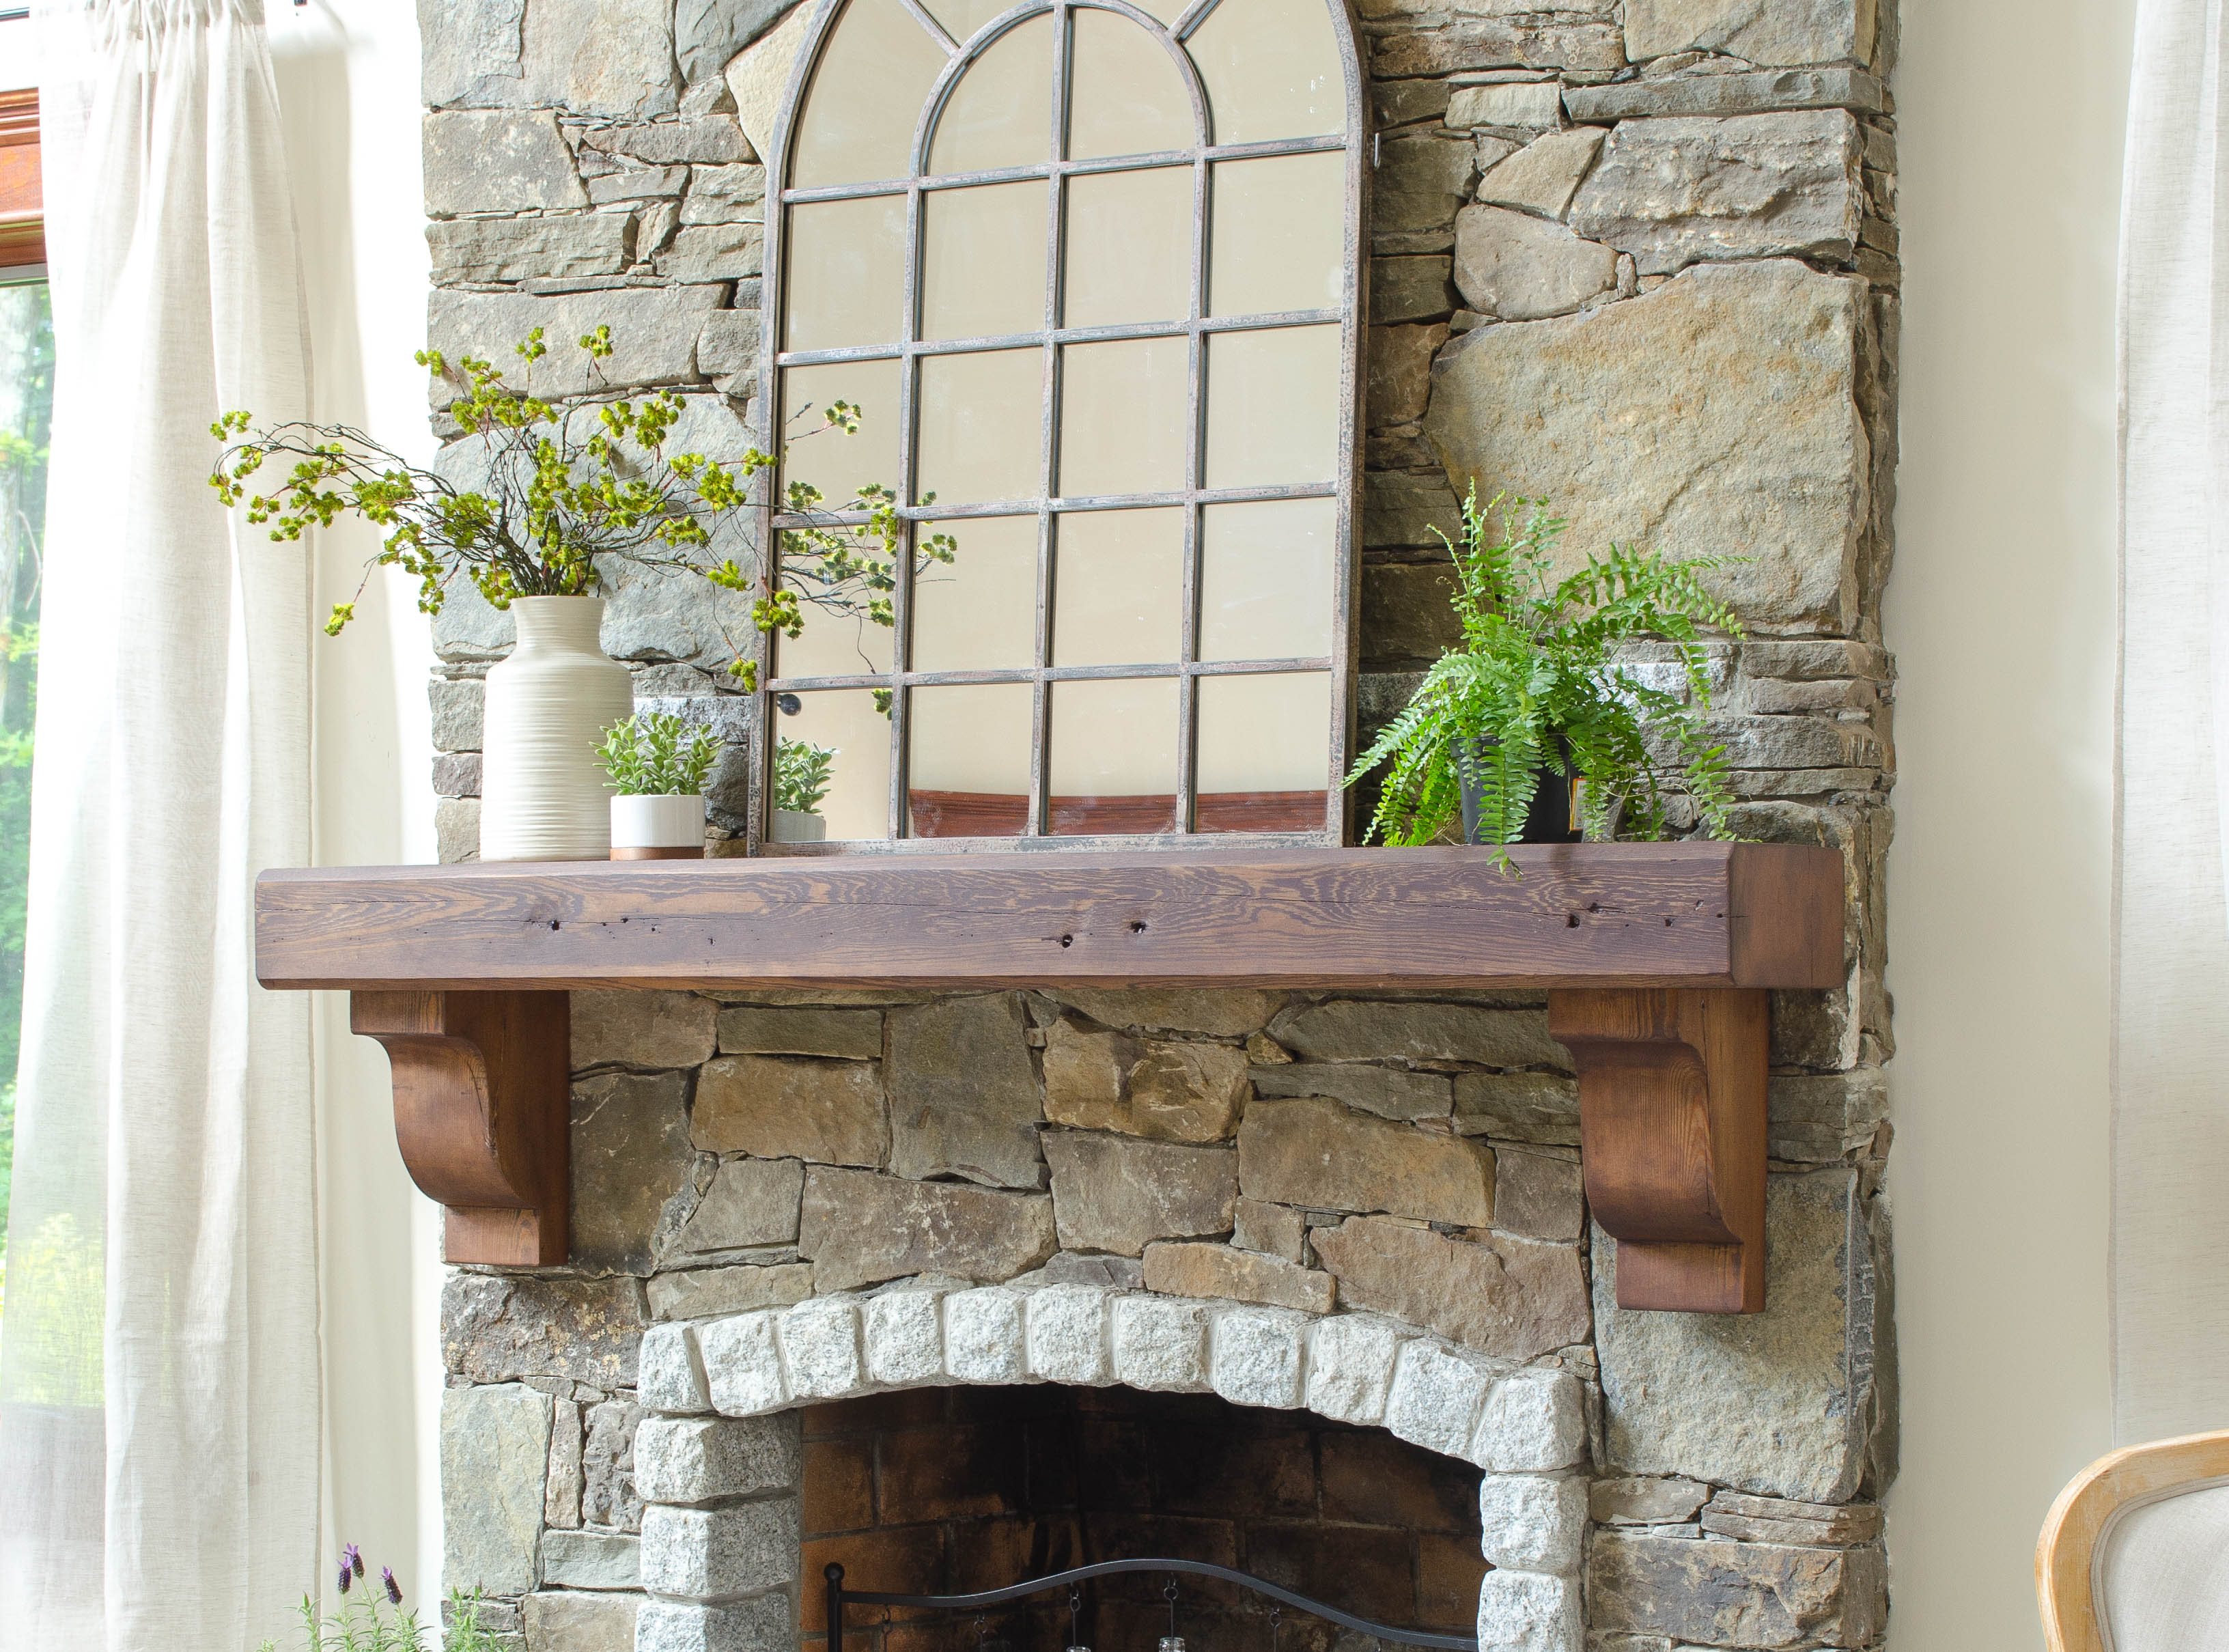 How to hang a wood mantel on a stone fireplace using rebar - Stone and wood fireplace ...